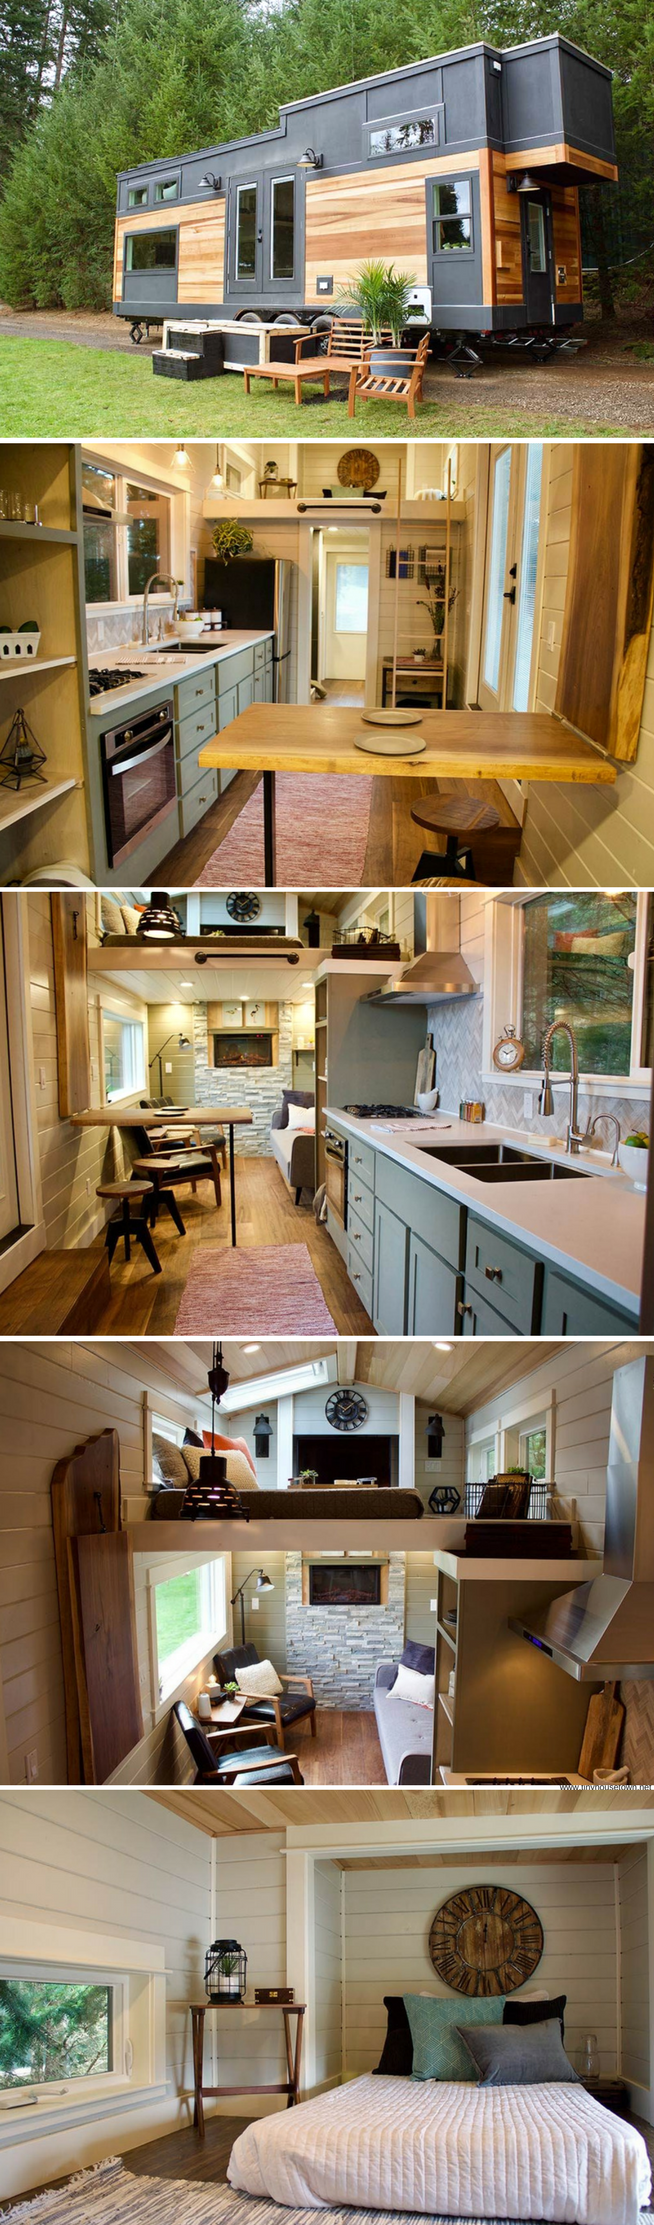 The Big Outdoors Tiny Home From Tiny Heirloom Small